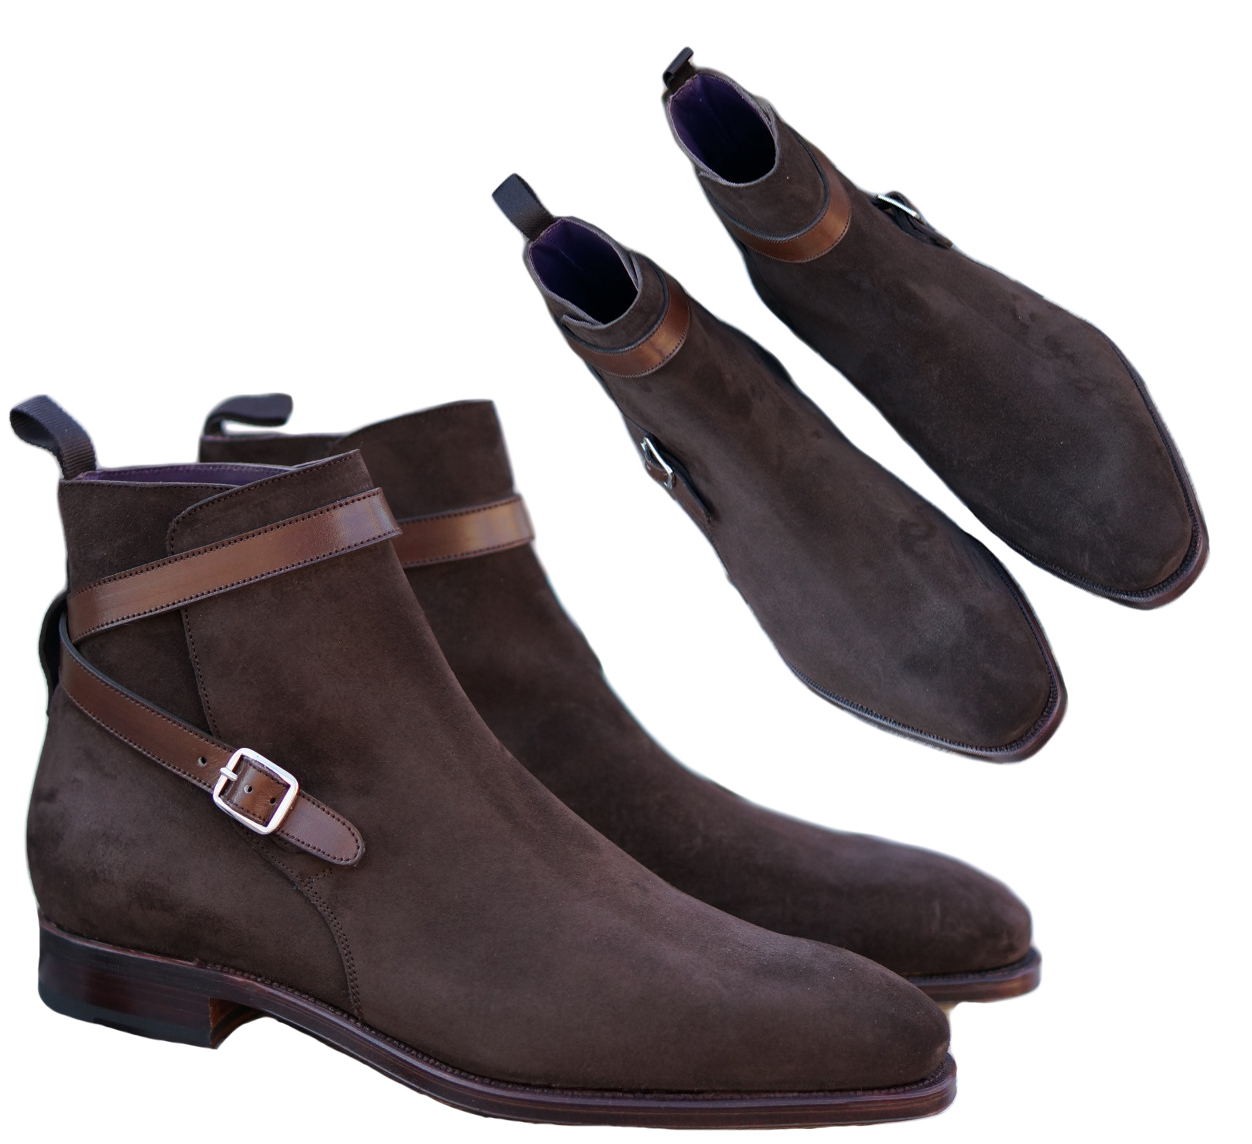 New Jodhpurs Brown Ankle Suede Boots, Ankle Boots Formal Party Leather Sole